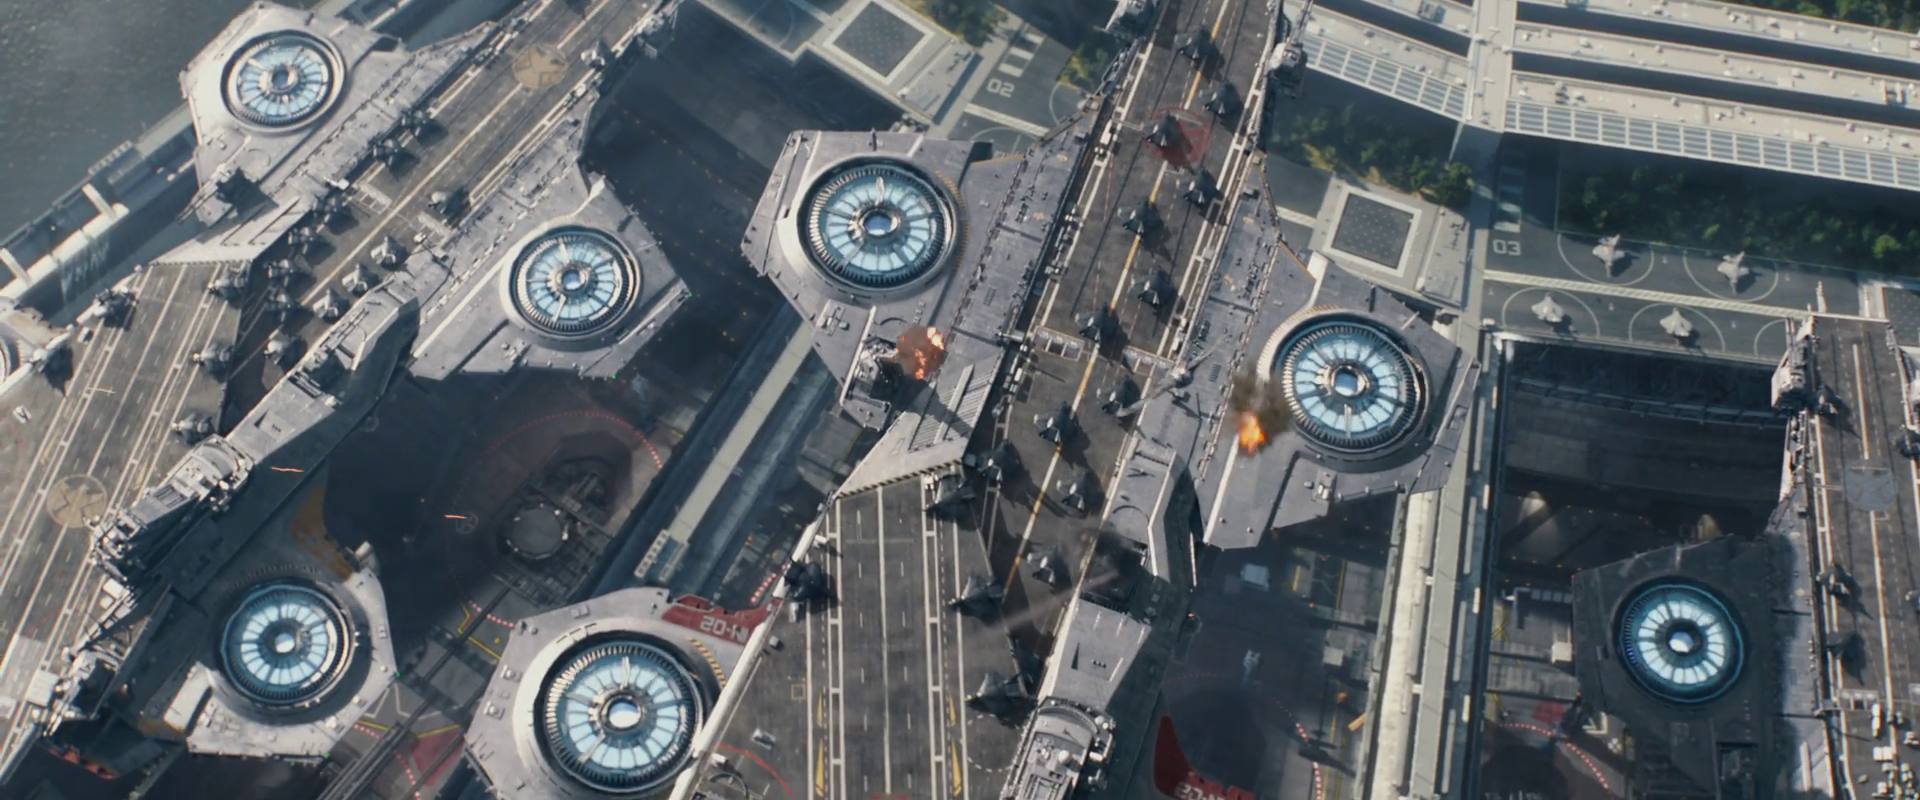 Captain America: Winter Soldier  (2014), helicarriers emerge.